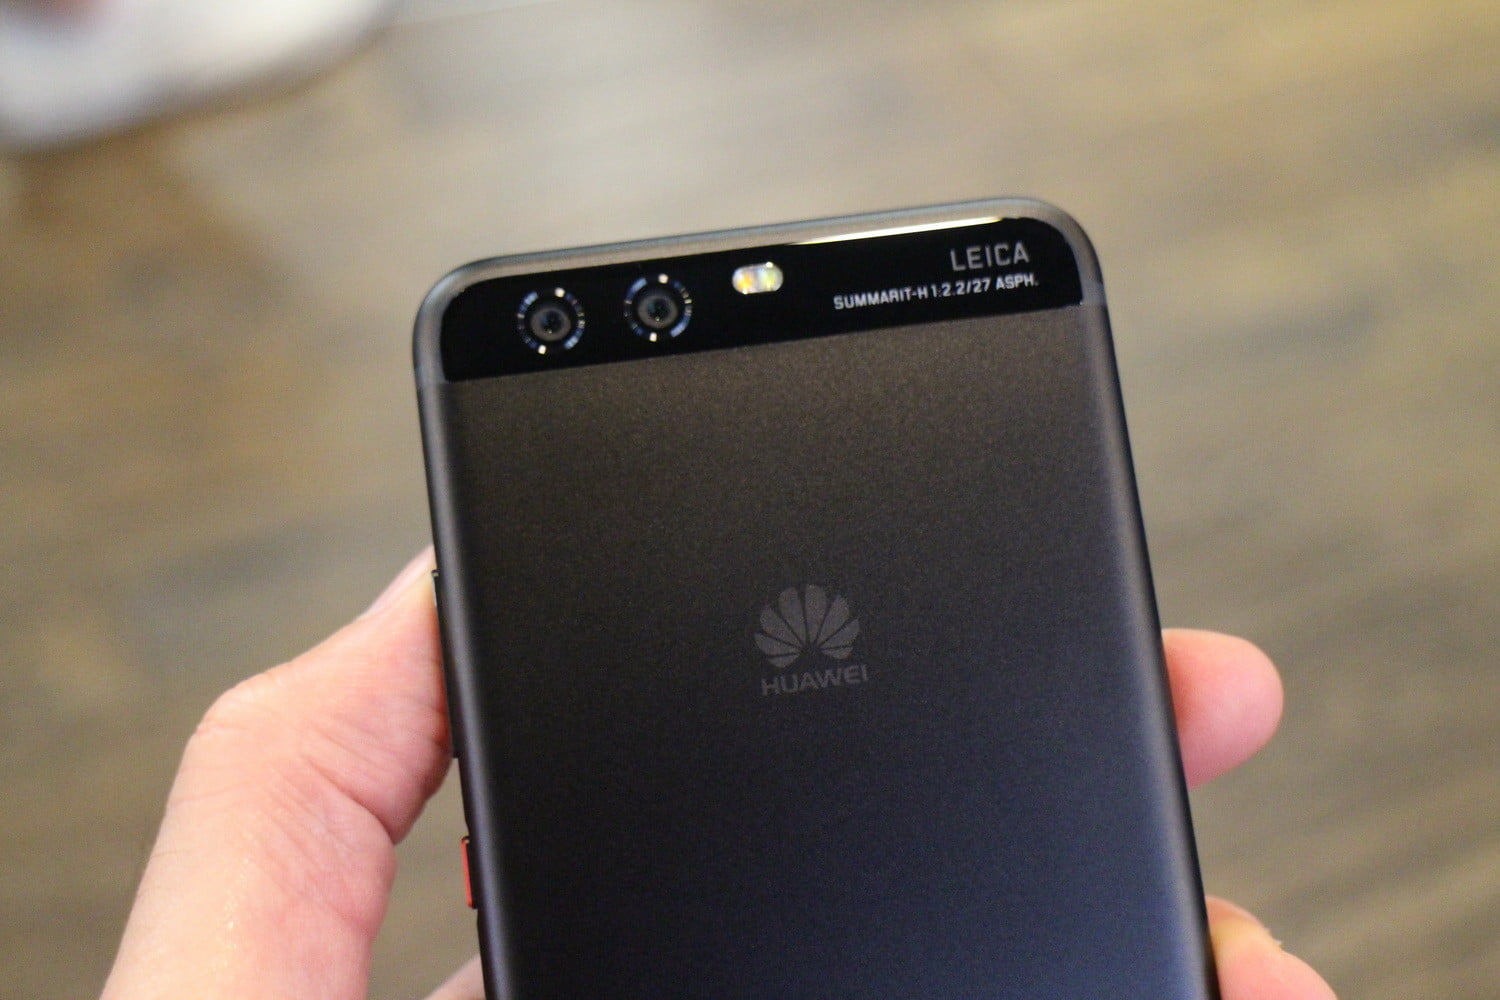 huawei p10 camera guide how to take picture perfect photos rh digitaltrends com Fleetwood Mobile Home Wiring Diagram Radio Wiring Diagram